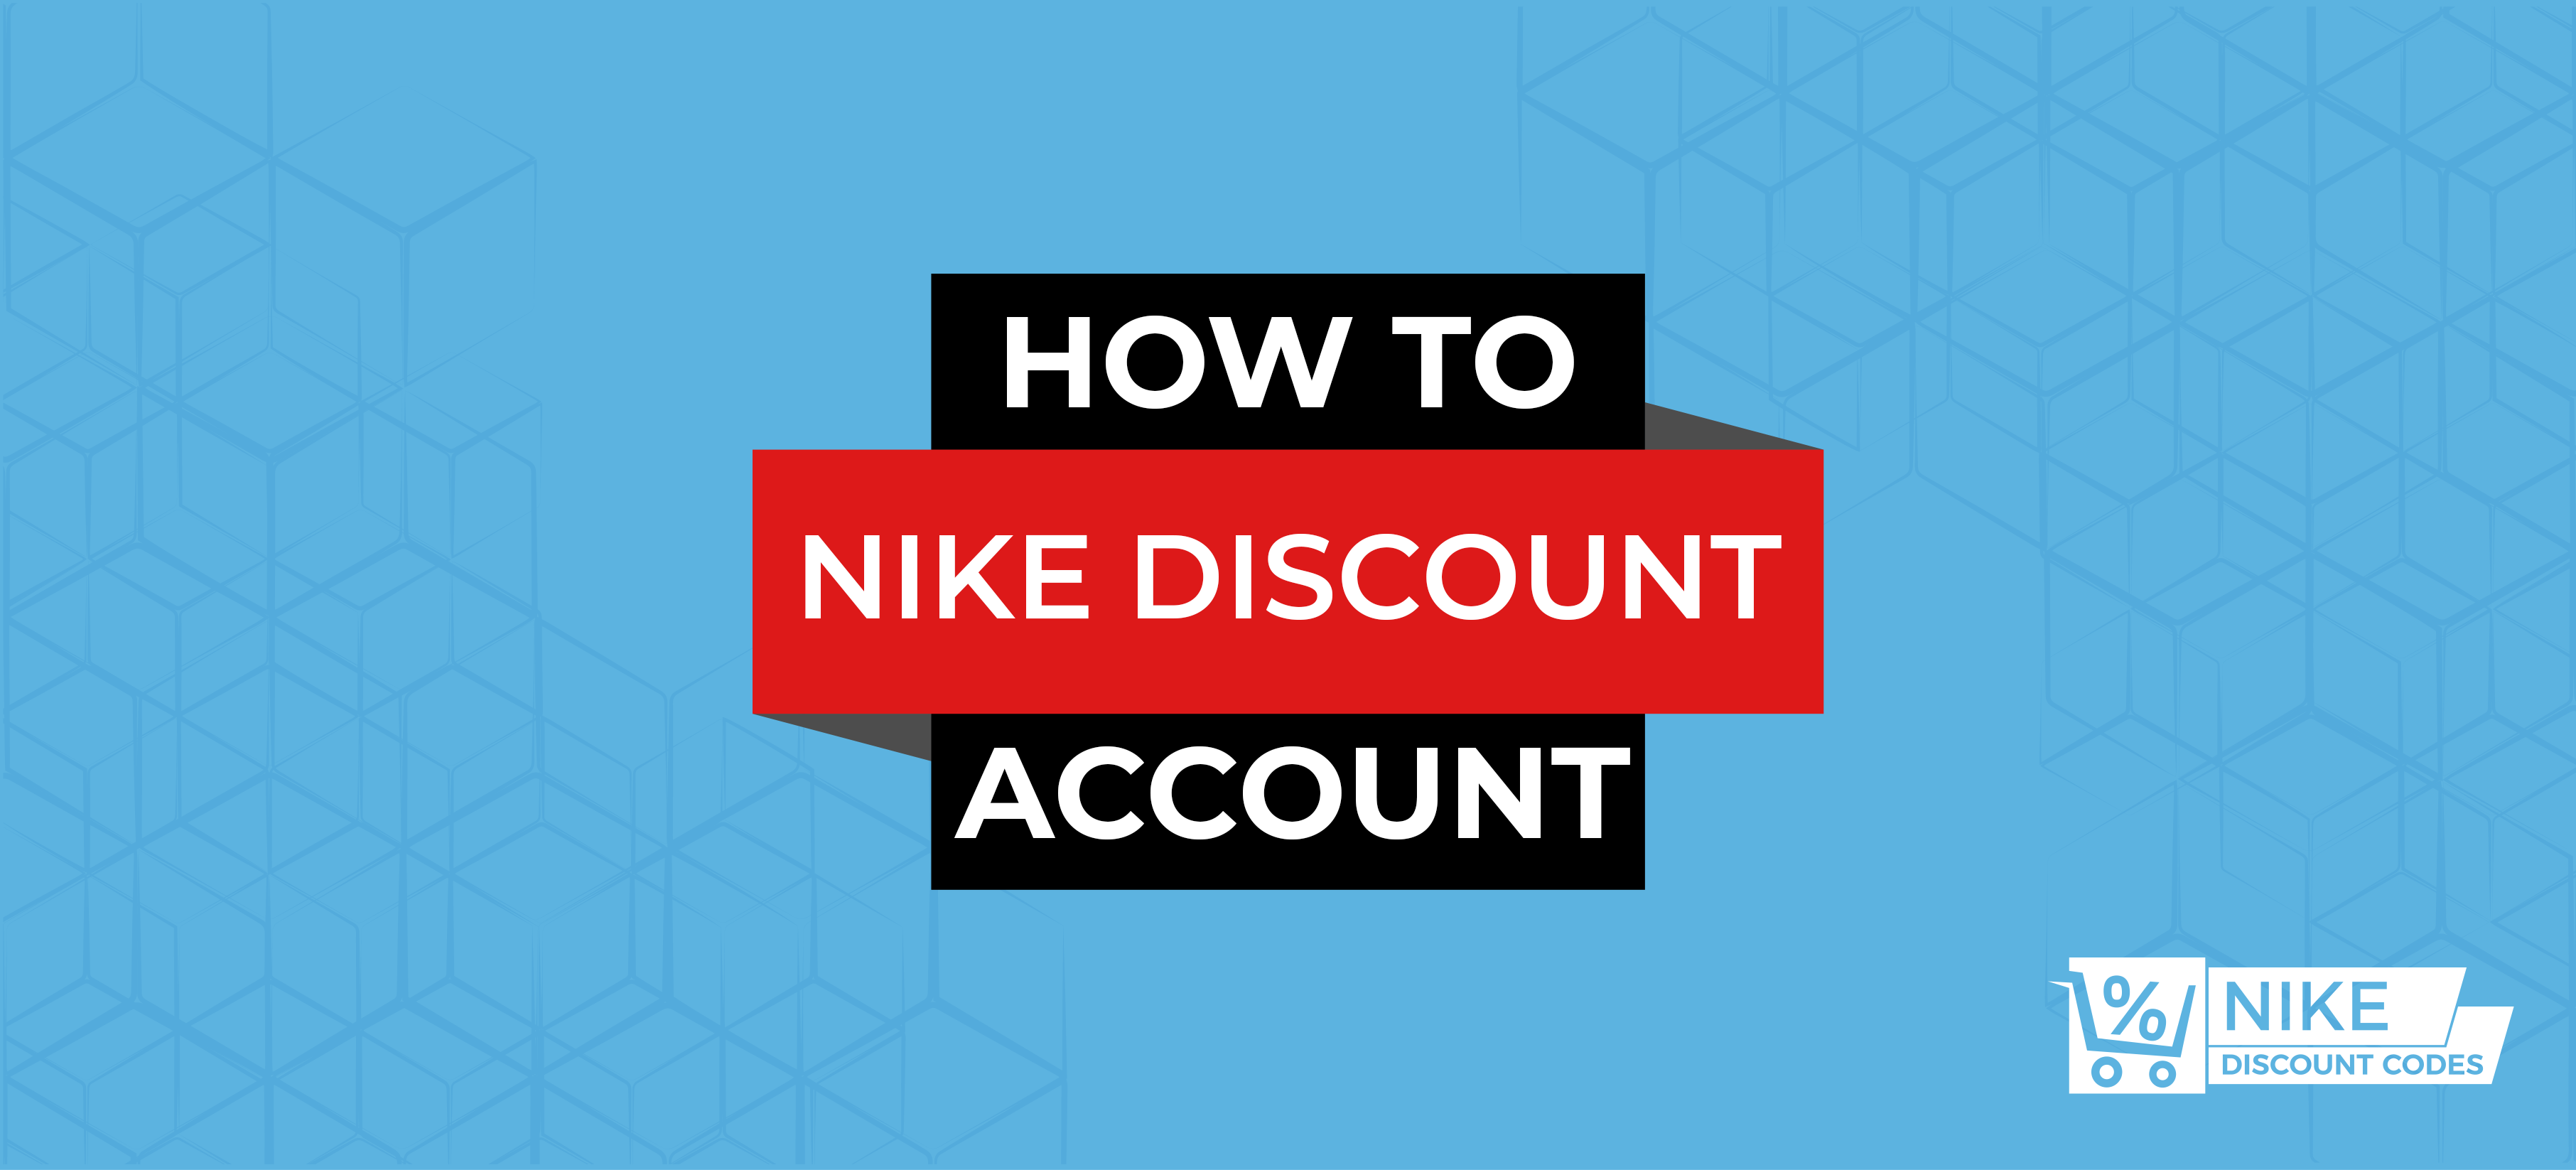 Ver insectos Fuerza Barcelona  How to use a Nike Discount Account - Nike Discount Codes